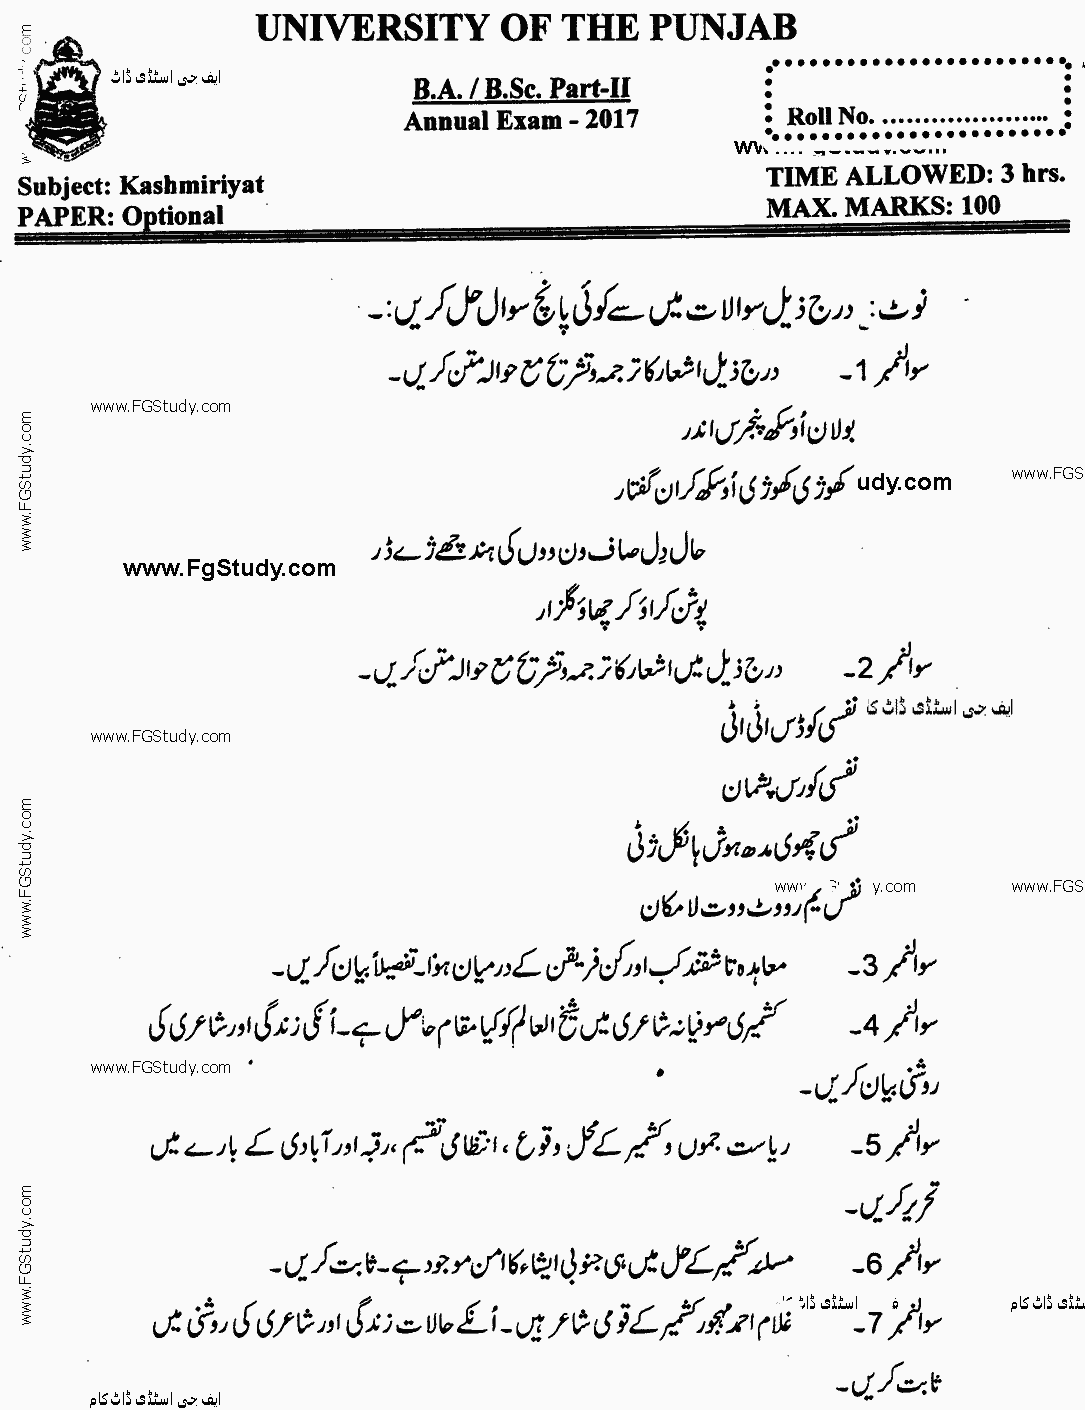 kashmiryat BA Part 2 Past Papers 2017